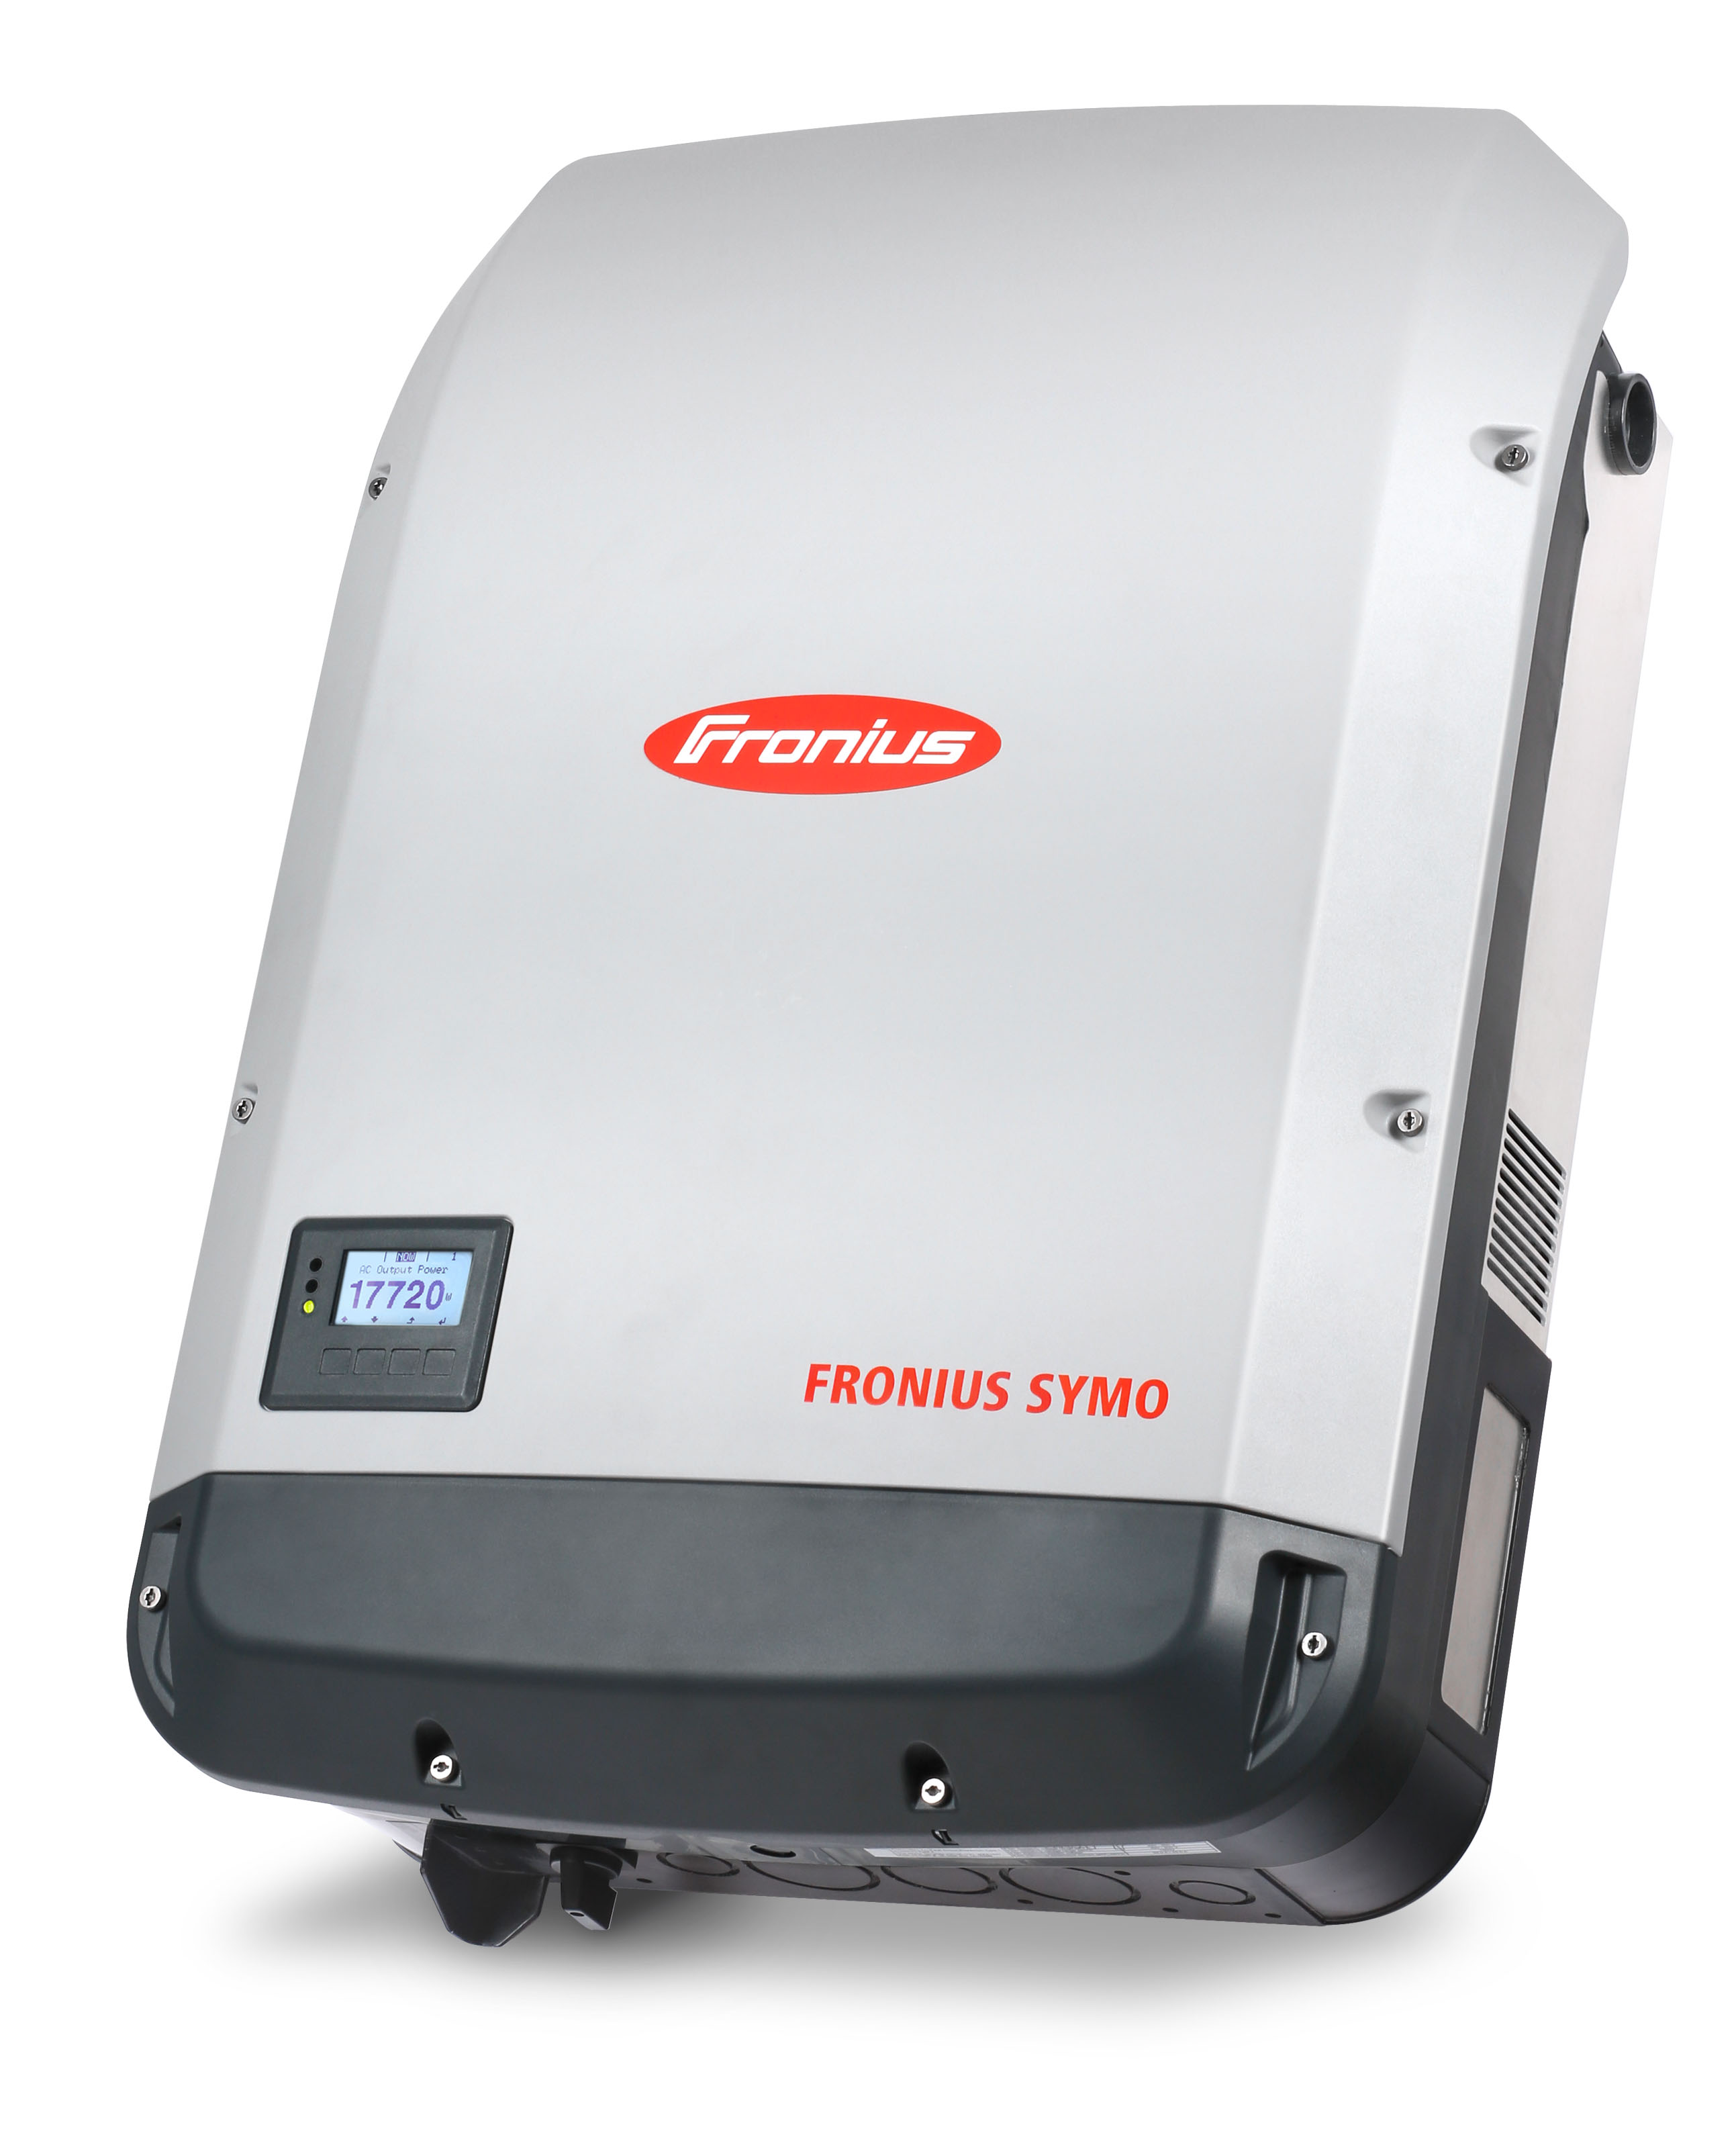 FRONIUS, SYMO 24.0-3 480, NON-ISOLATED STRING INVERTER, 24.0 KW, 480 VAC, LITE - NO DATAMANAGER 2.0 CARD